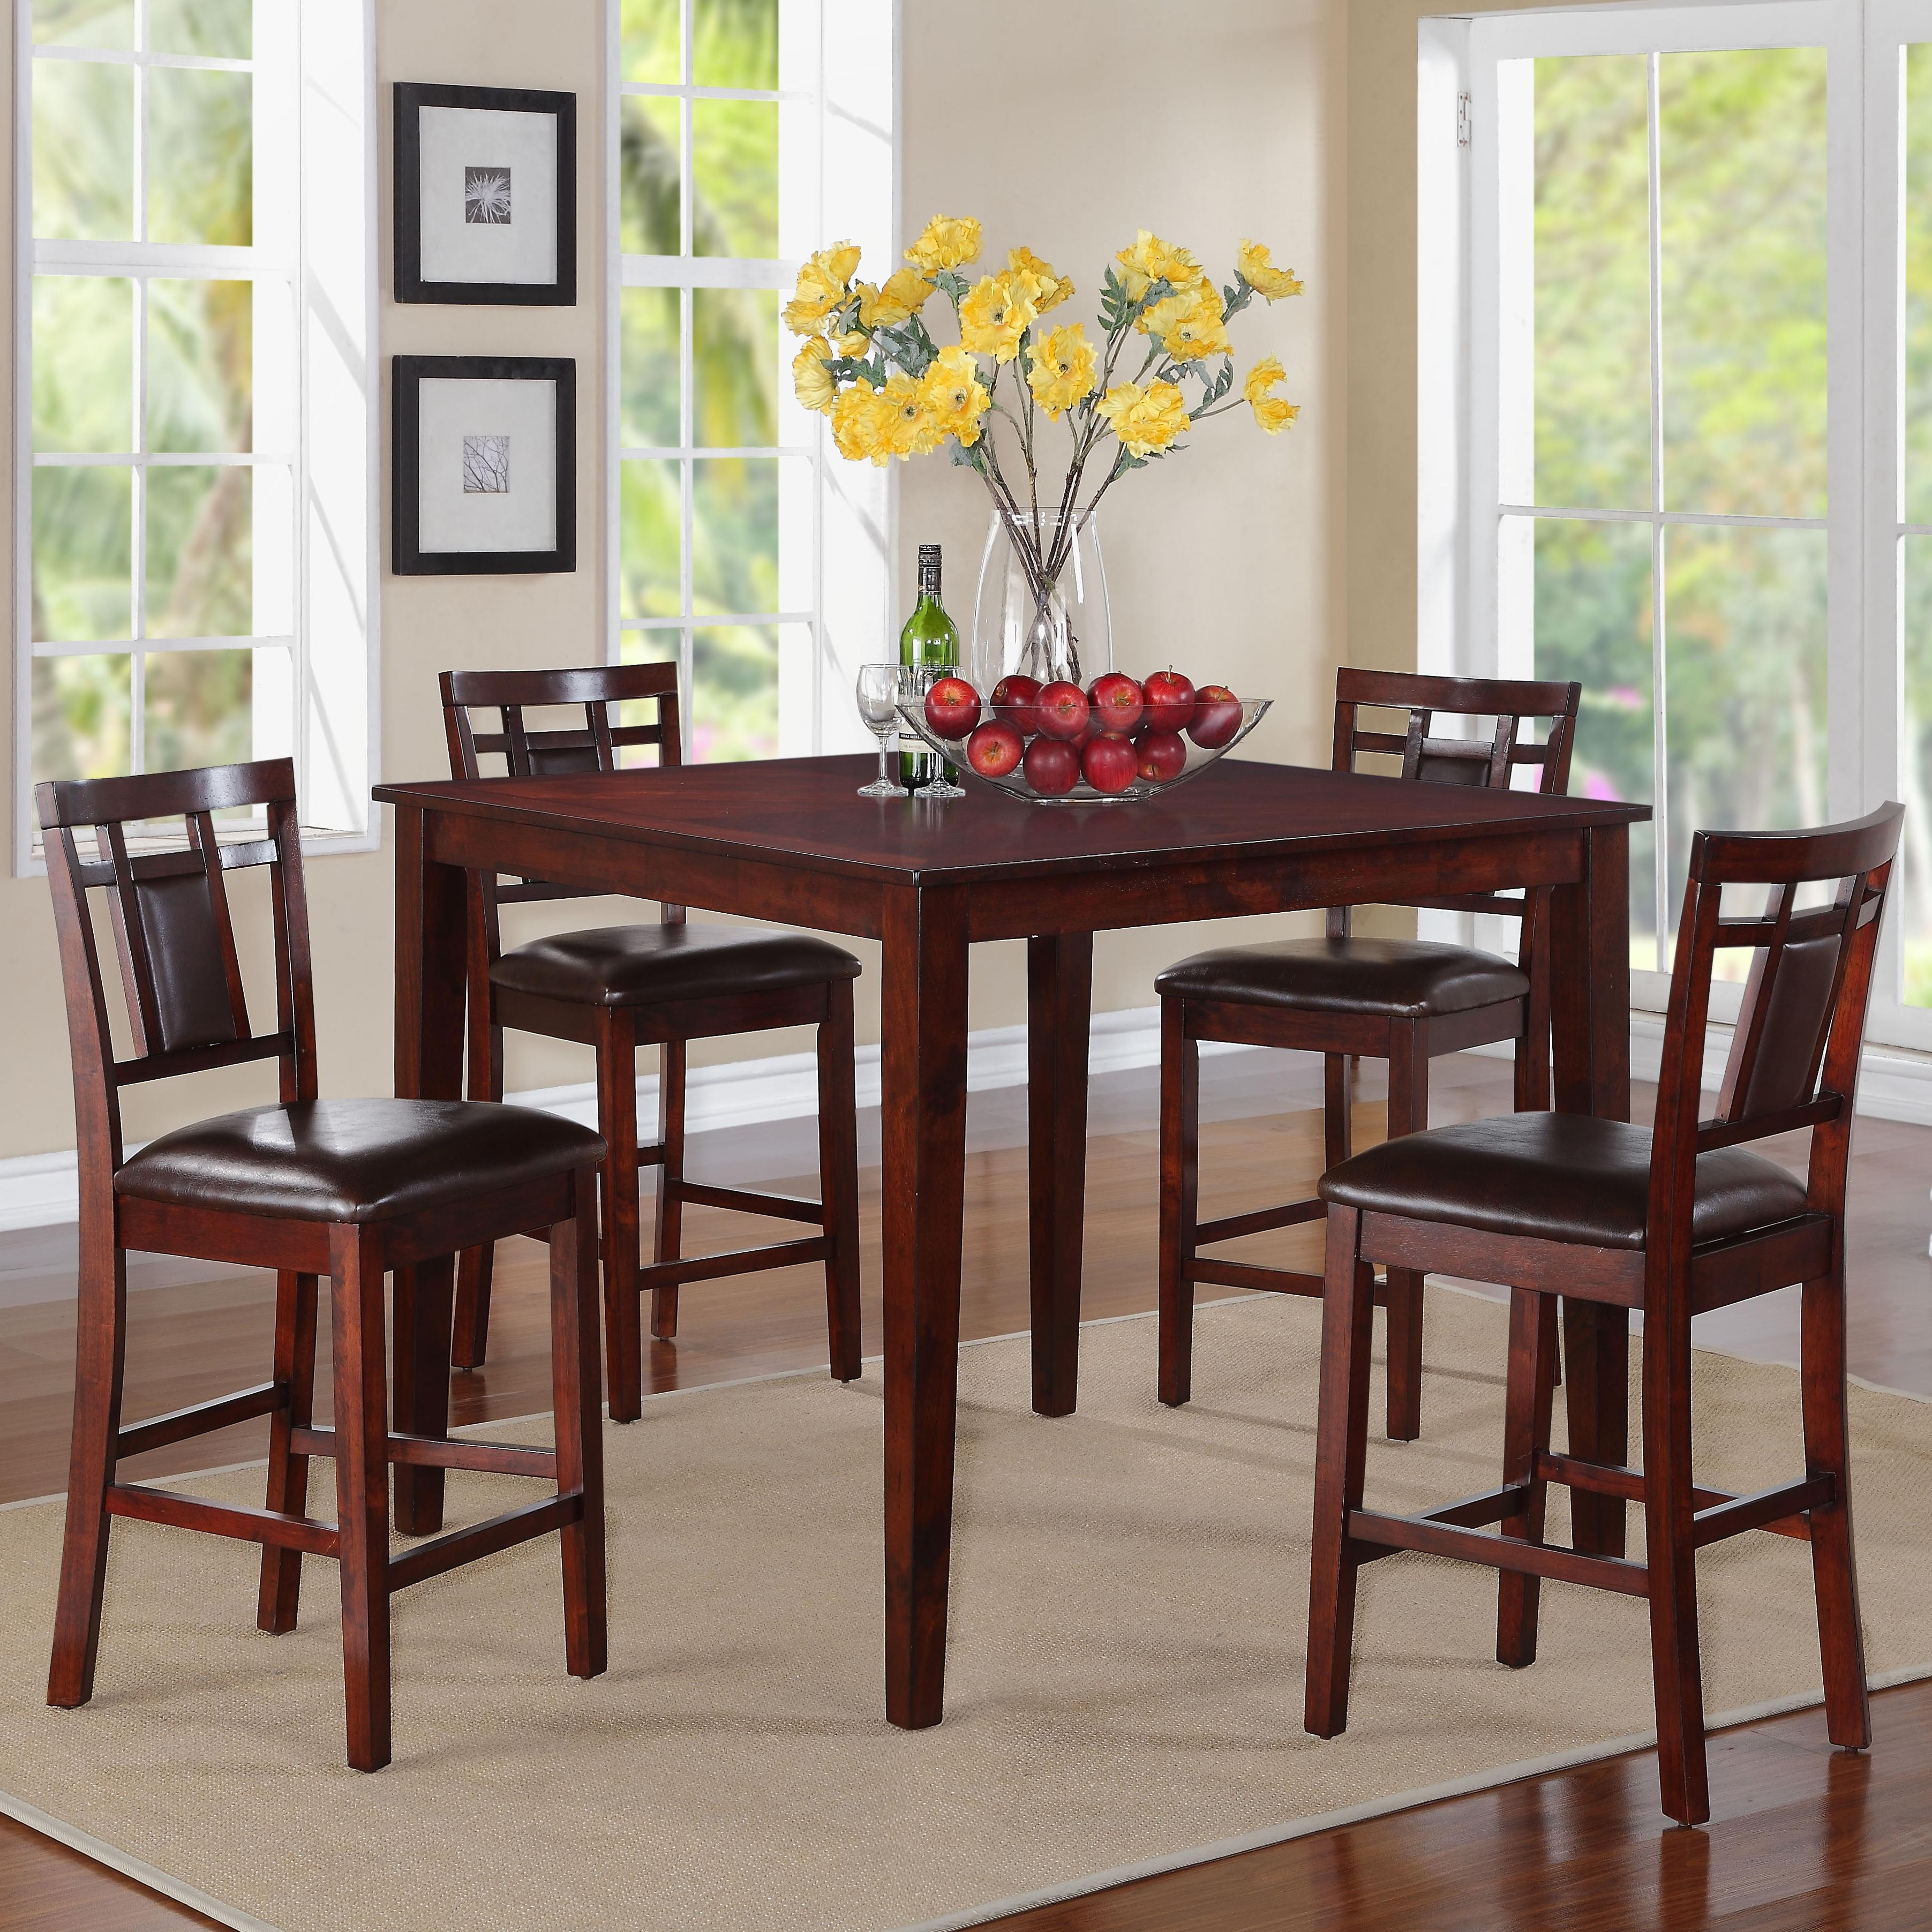 5 Piece Counter Height Table With Stools Set By Standard Furniture